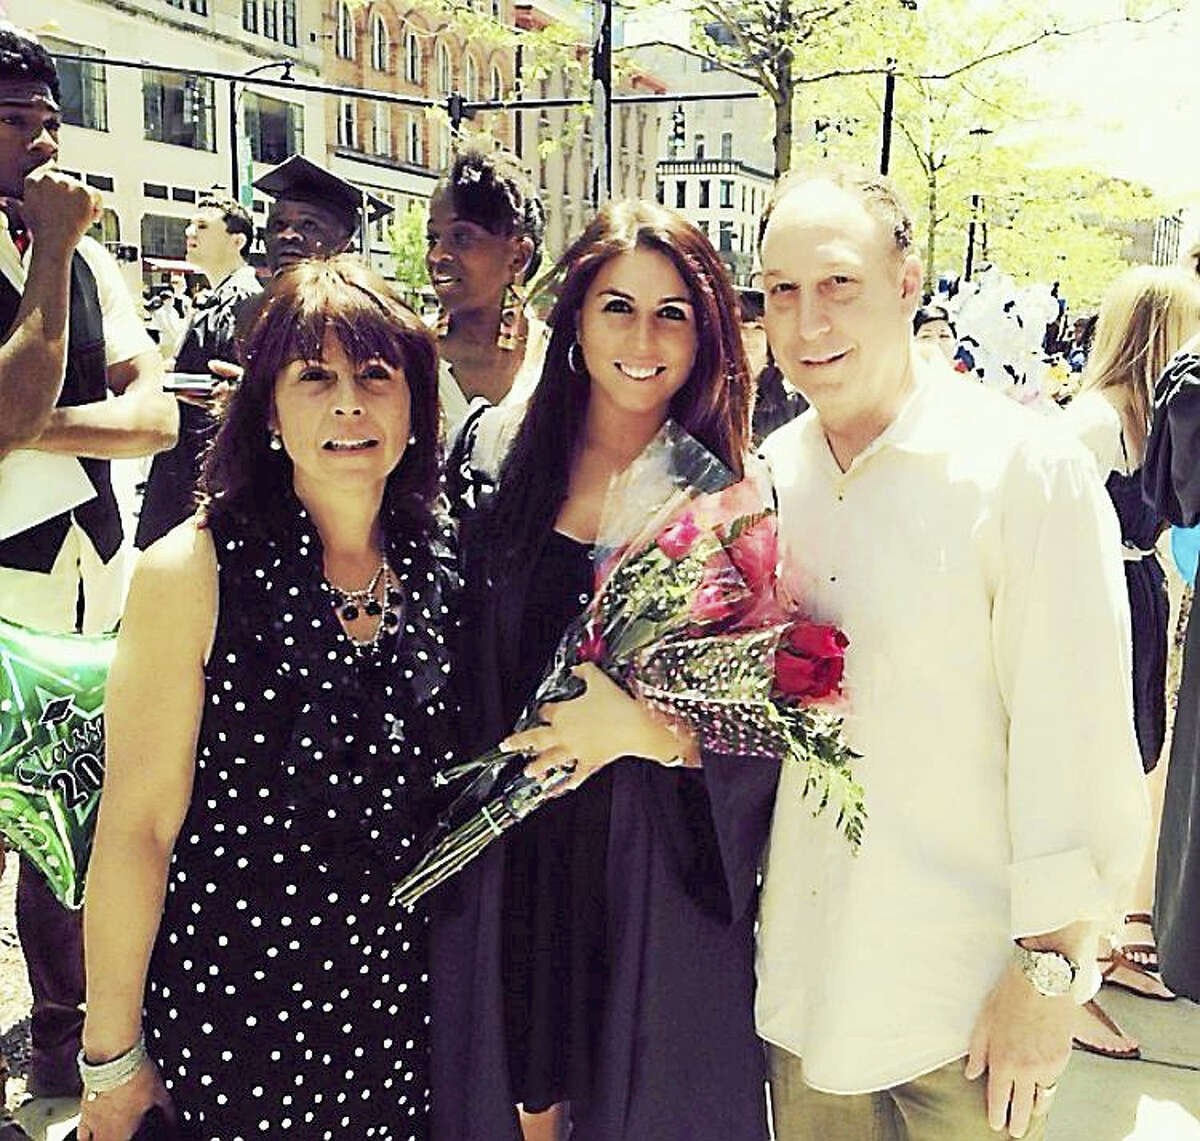 Shown are Carol Director, left, David Director, right; and their daughter Jenna, who was named a Big Sister of the Year in 2013.